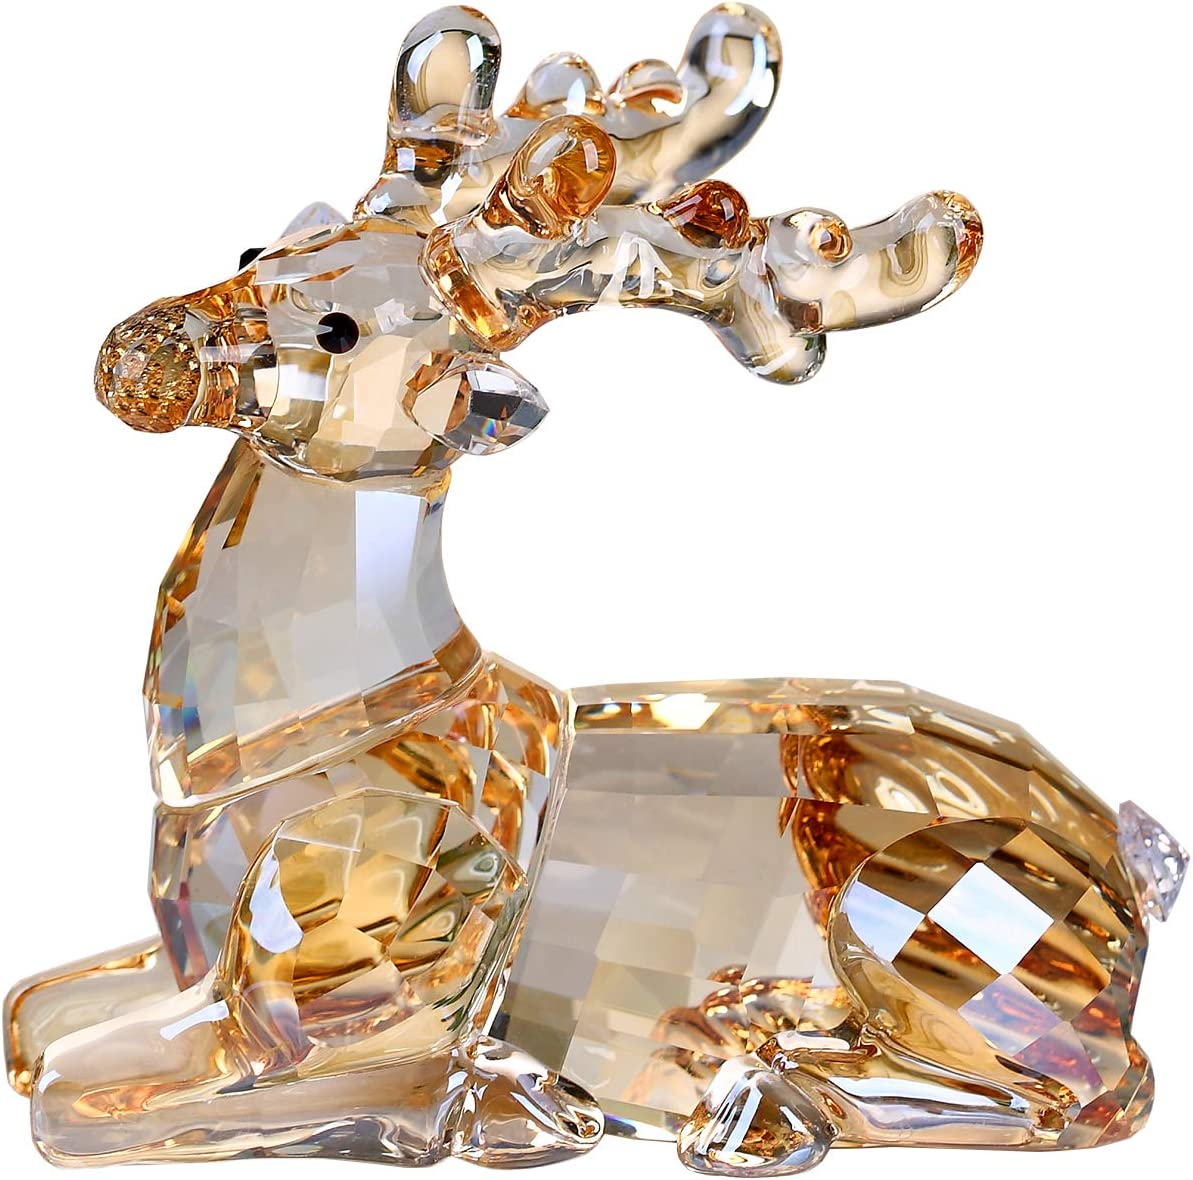 Crystal Sika Deer Animals Lovely Elegant Craft Decorations for Home Ornaments Christmas Collectible Birthday Gifts Reindeer Figurines (Gold)